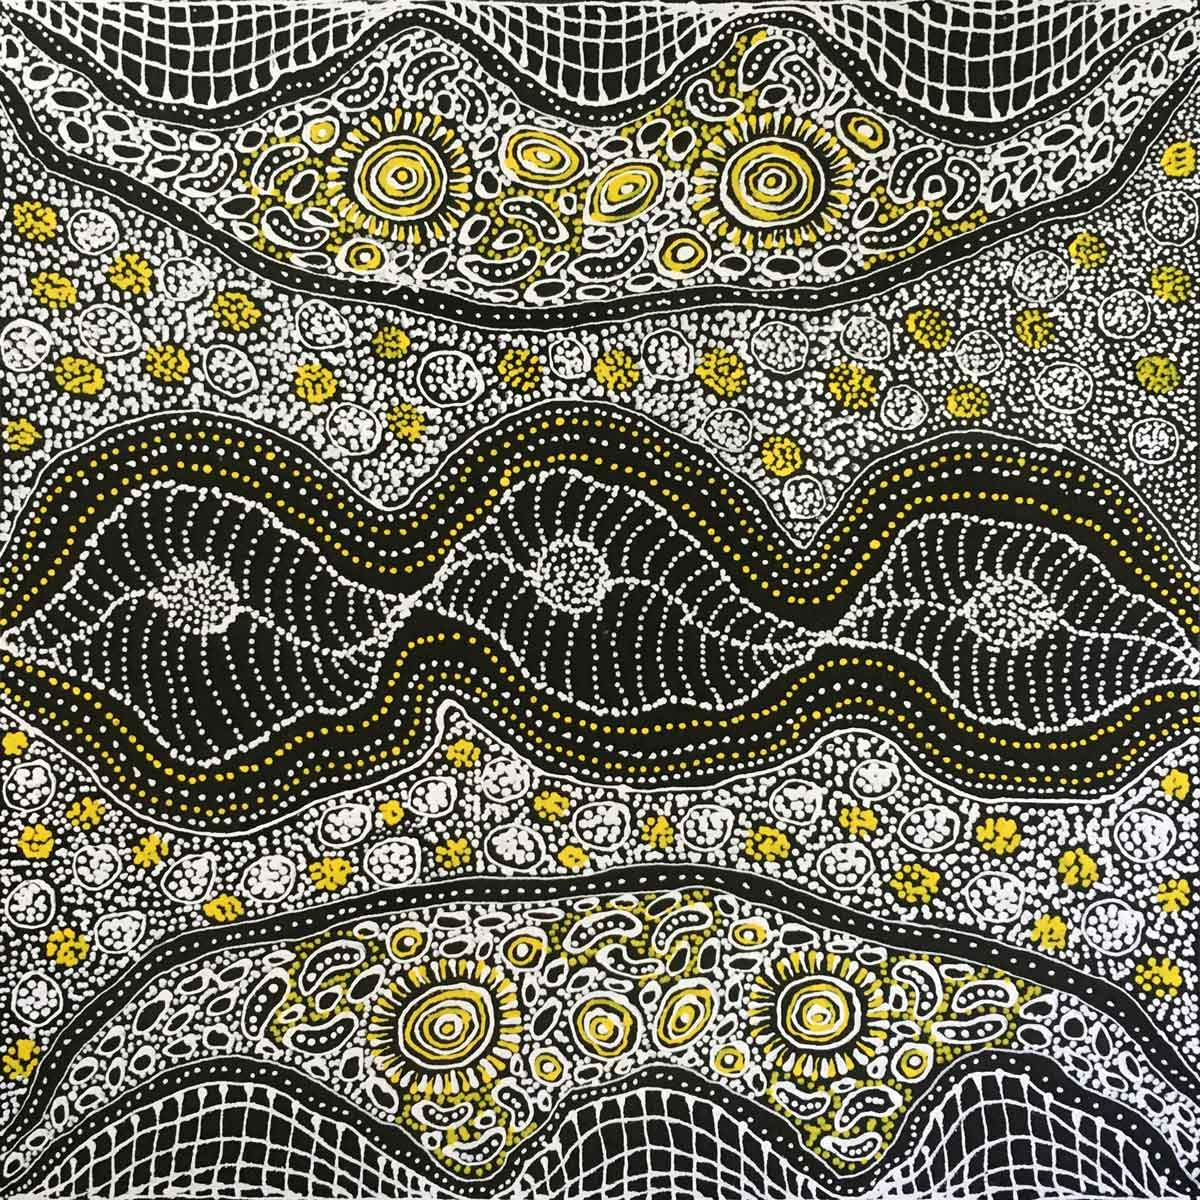 My Country by Dulcie Pwerle Long. Australian Aboriginal Art.